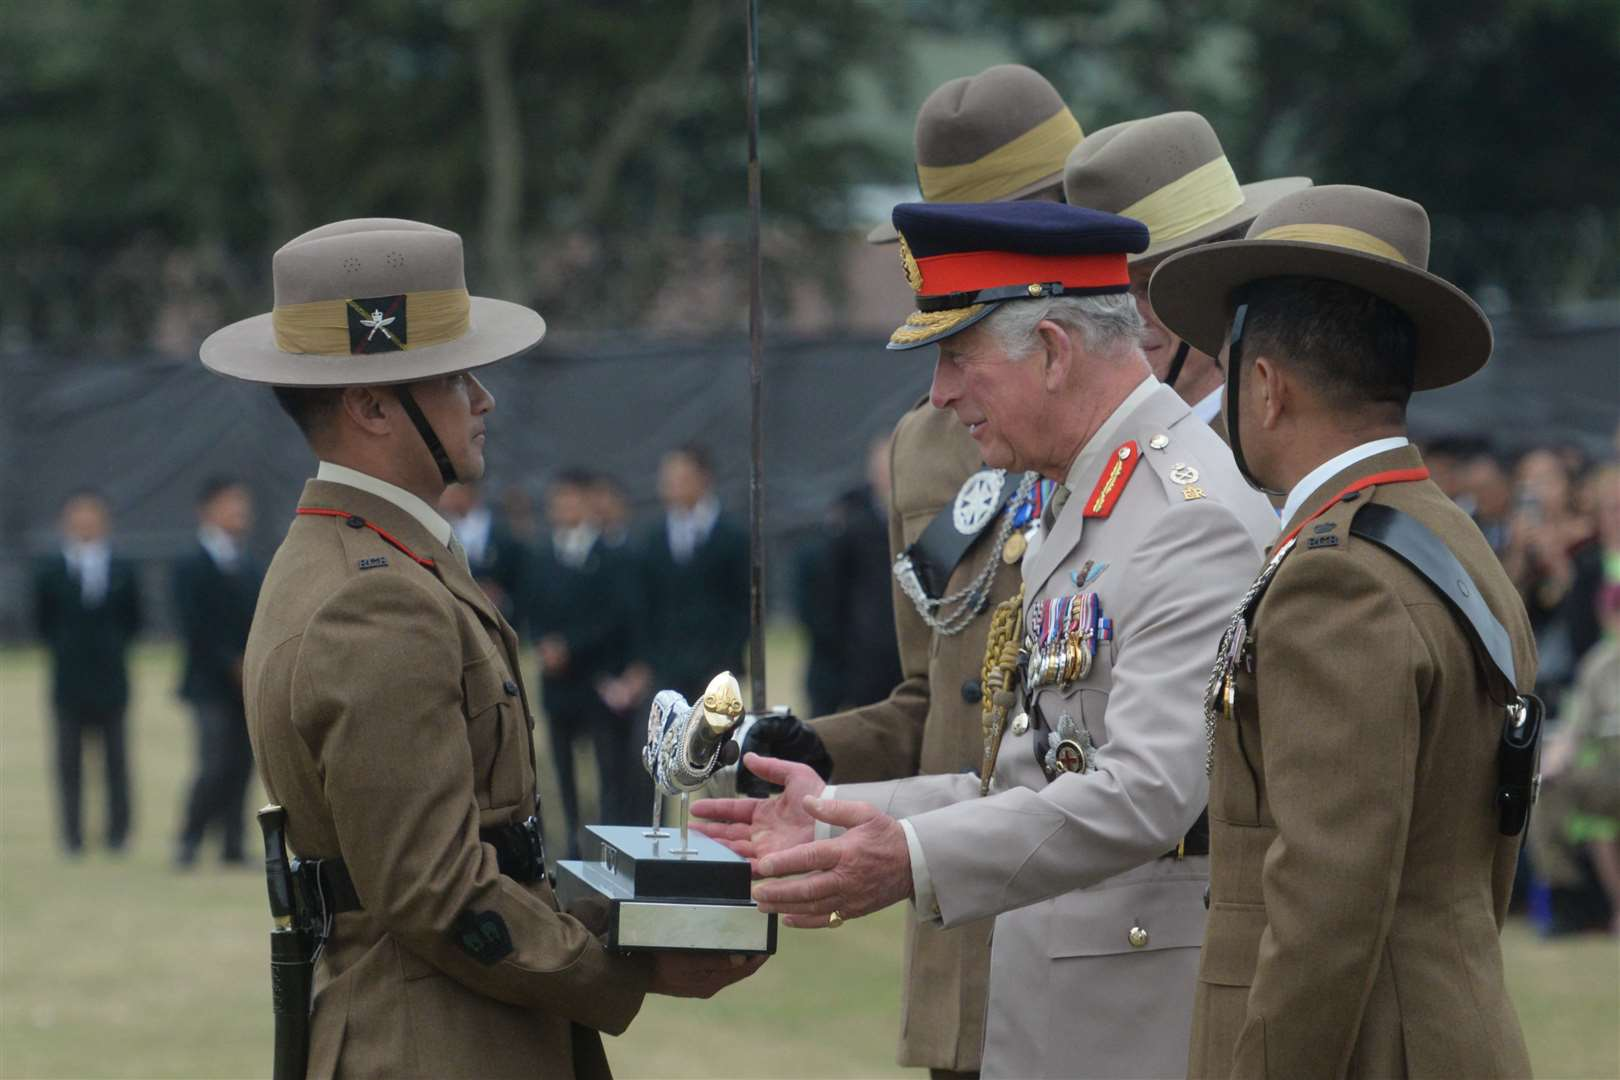 Prince Charles makes the presentation to WO2 Mukunda Rajali. Picture: Chris Davey